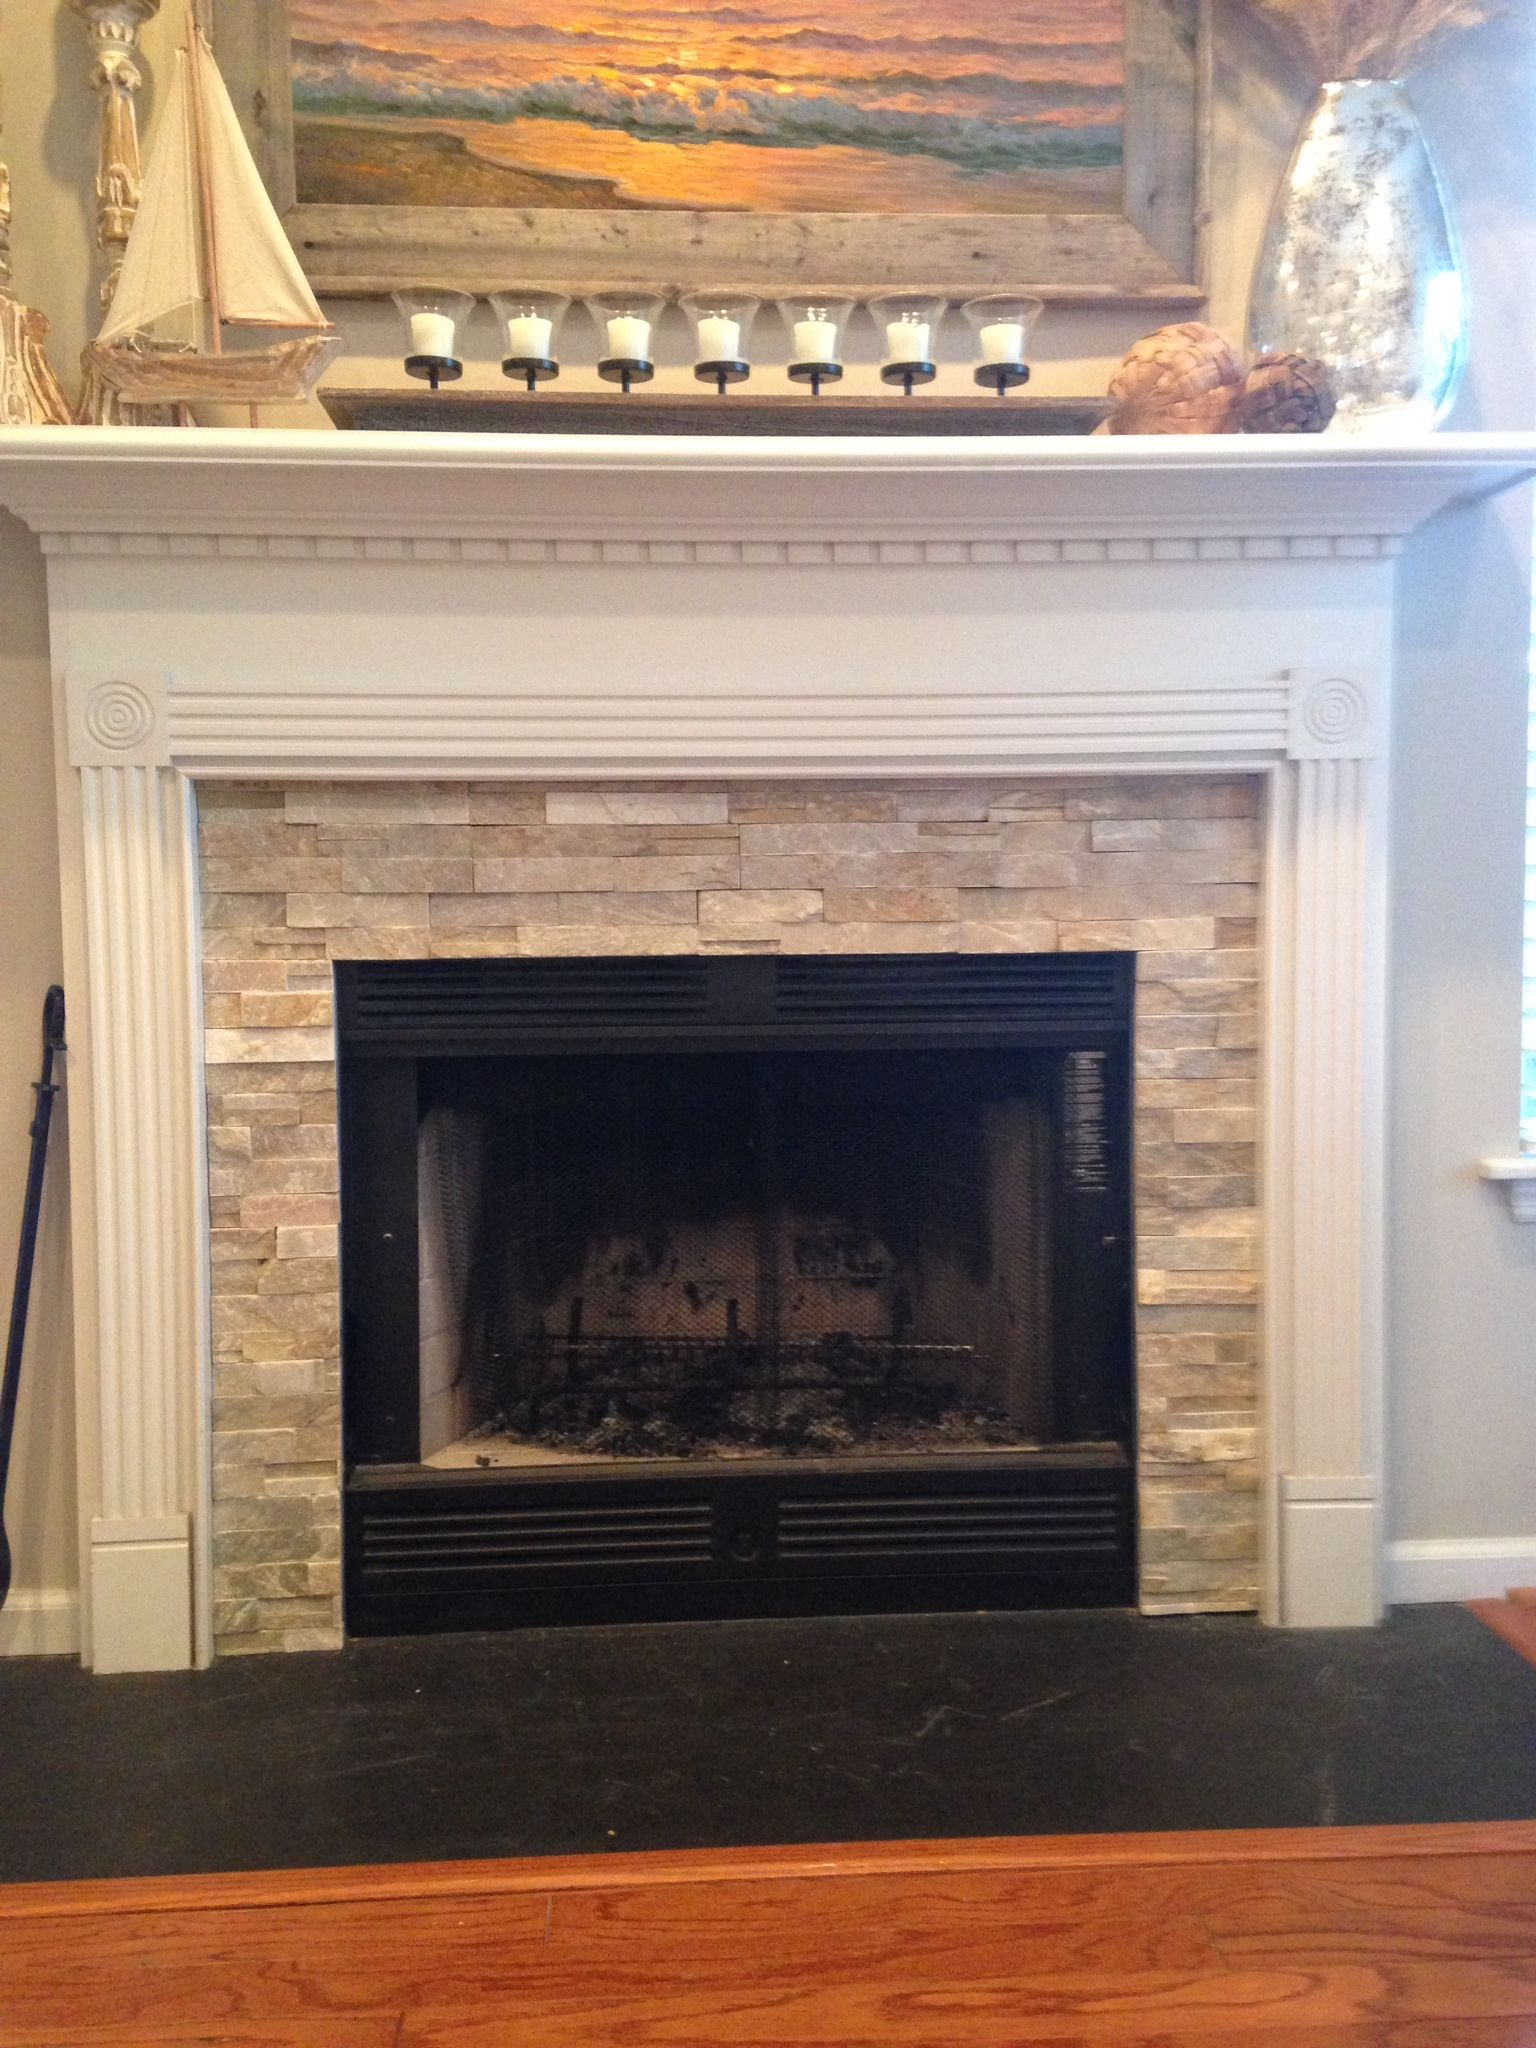 Granite Slab for Fireplace Hearth Luxury Fireplace Idea Mantel Wainscoting Design Craftsman